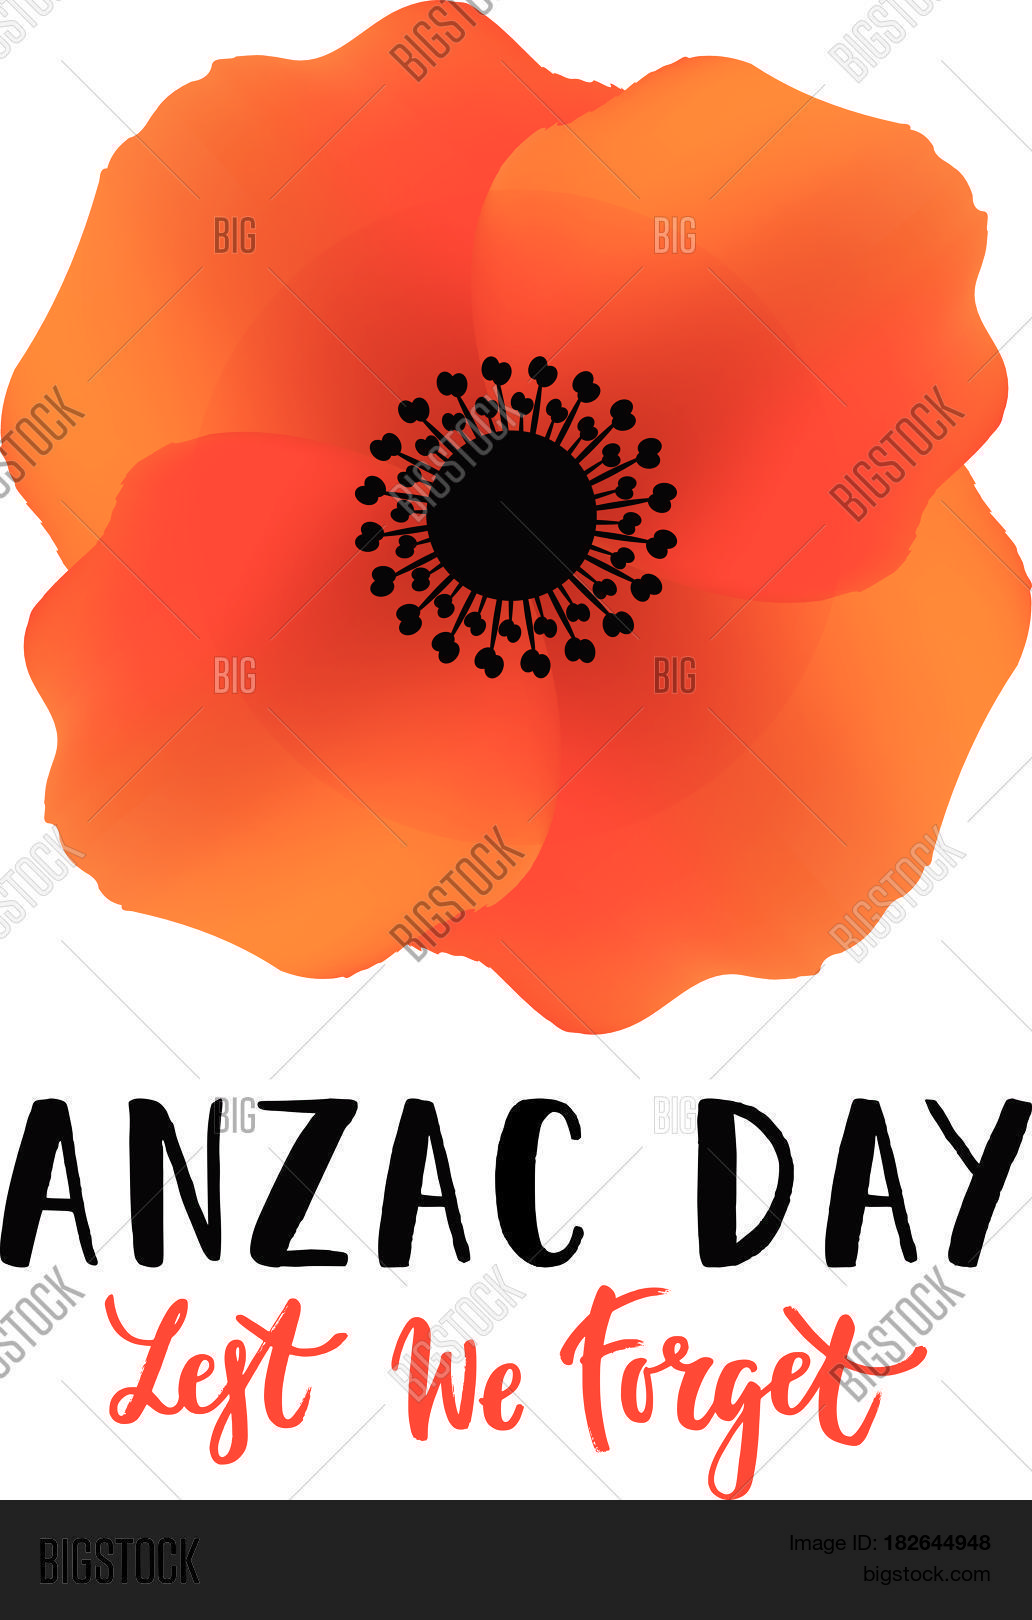 Vector illustration vector photo free trial bigstock vector illustration of a bright poppy flower remembrance day symbol anzac day lettering mightylinksfo